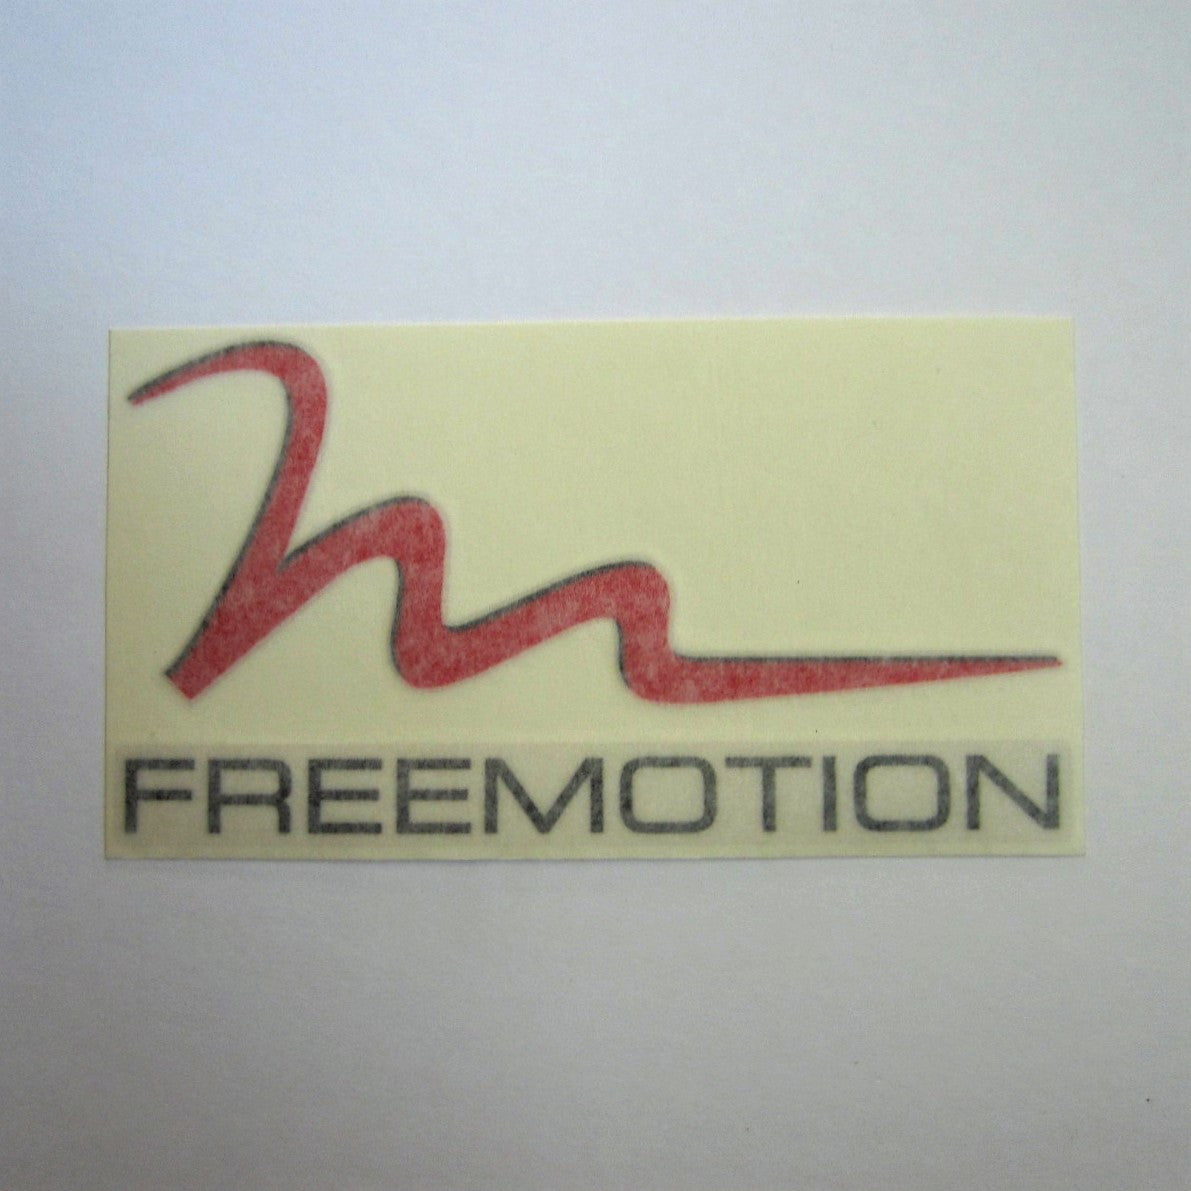 "Freemotion Decal 8"" x 4-1/2"""